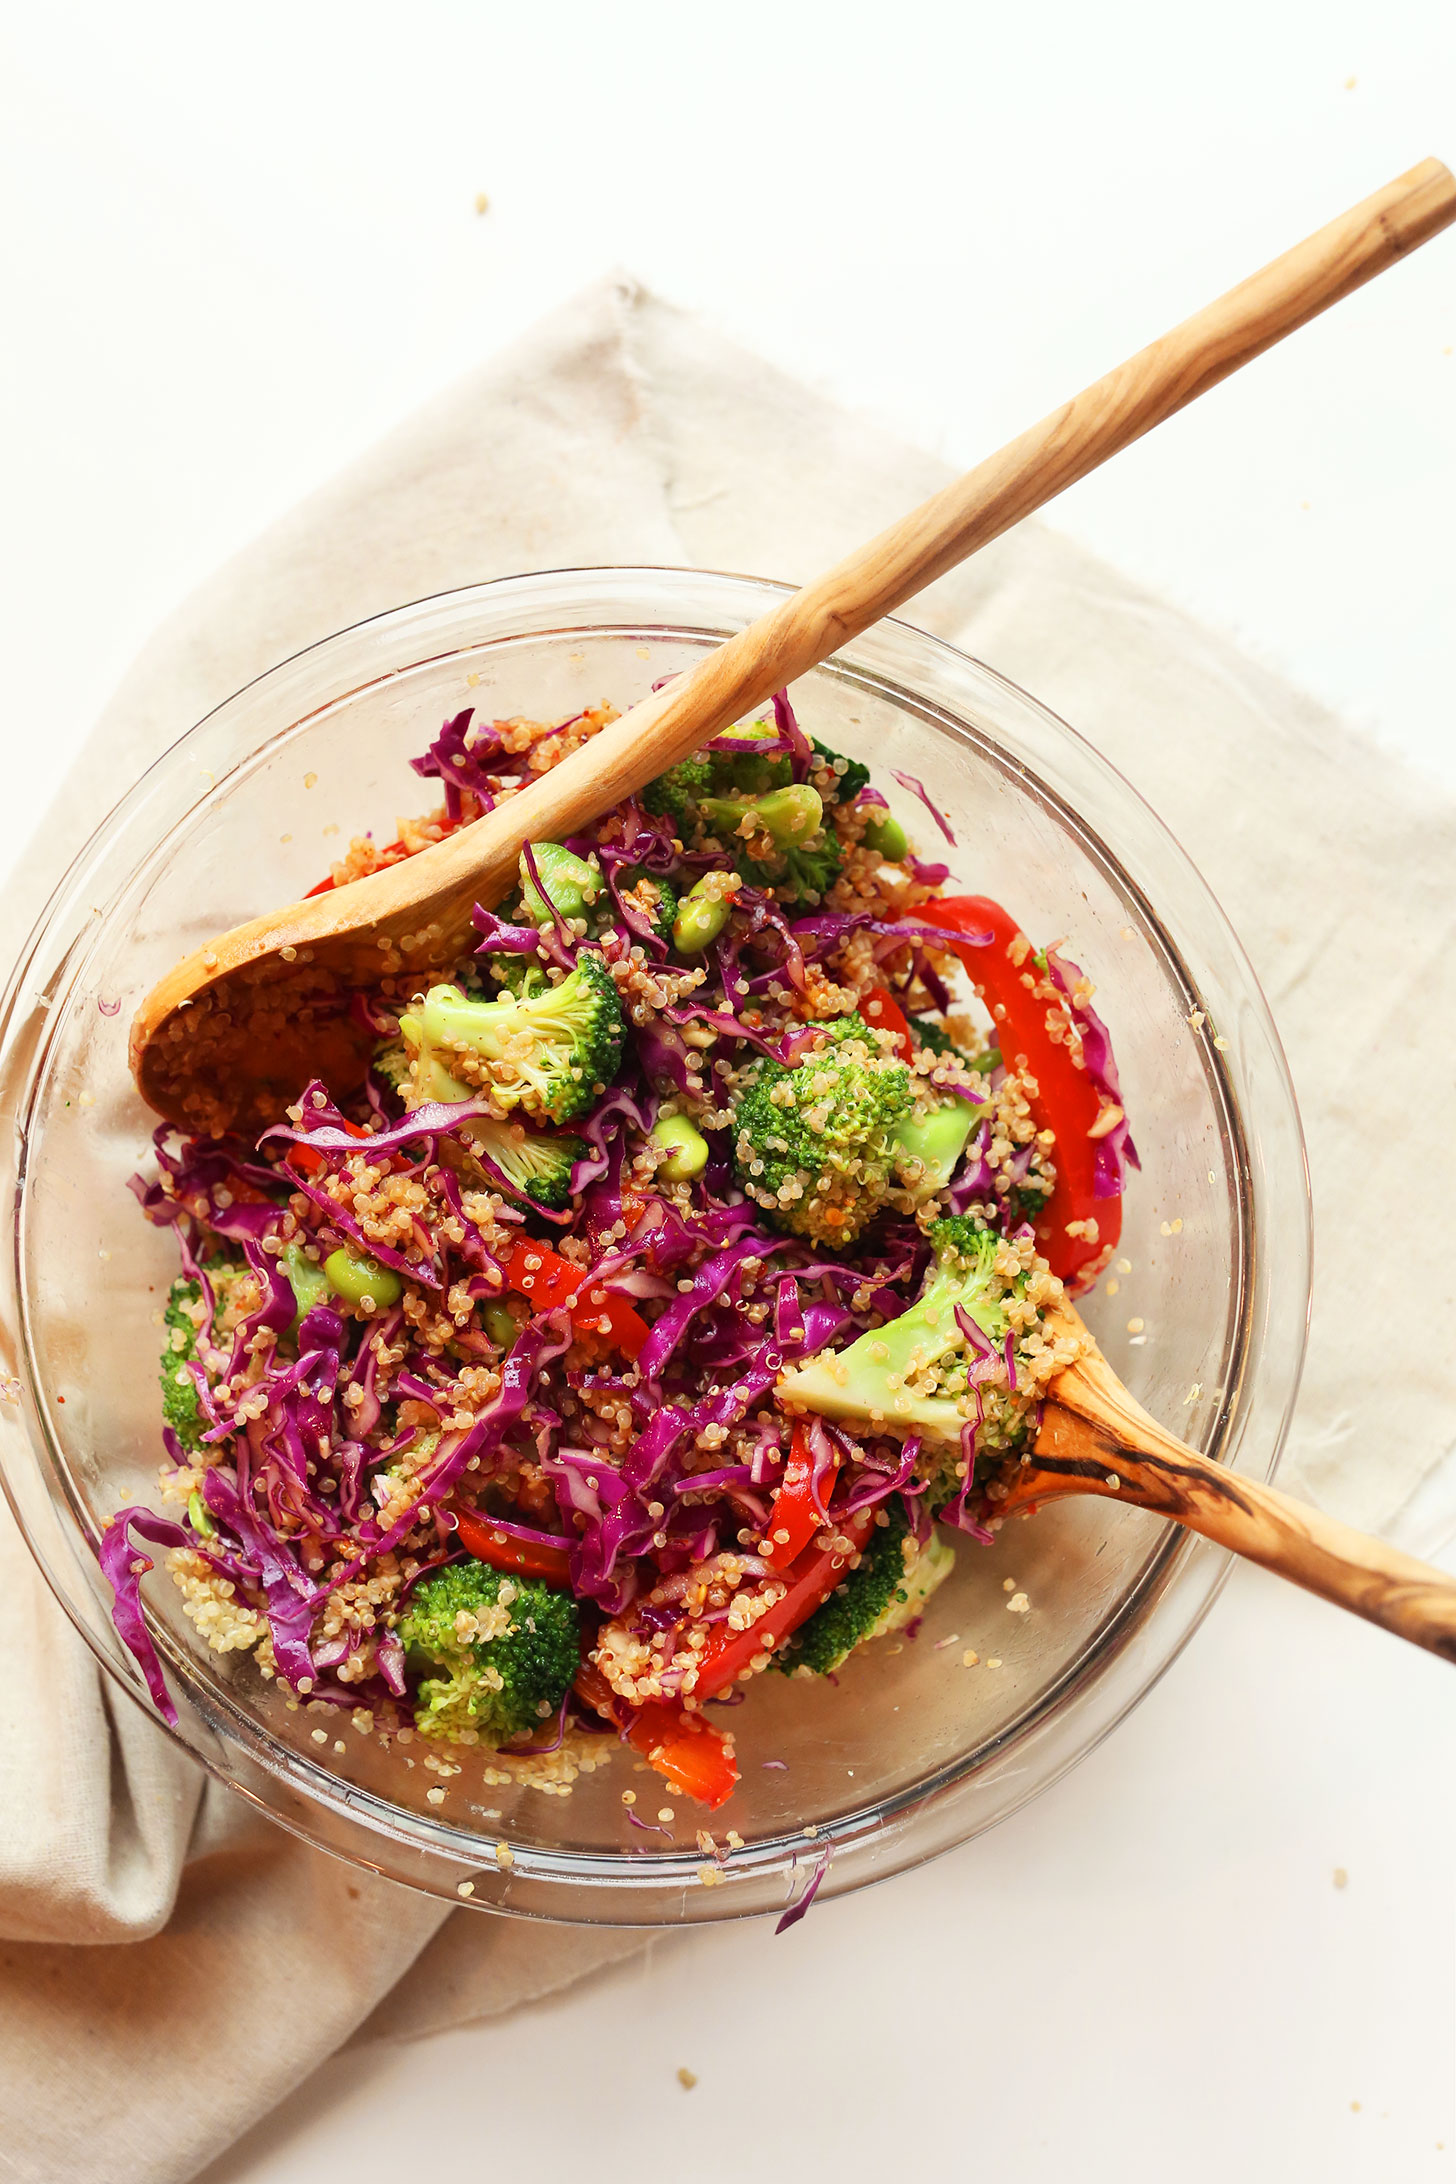 Bowl of our gluten-free vegan Asian Inspired Quinoa Salad Recipe